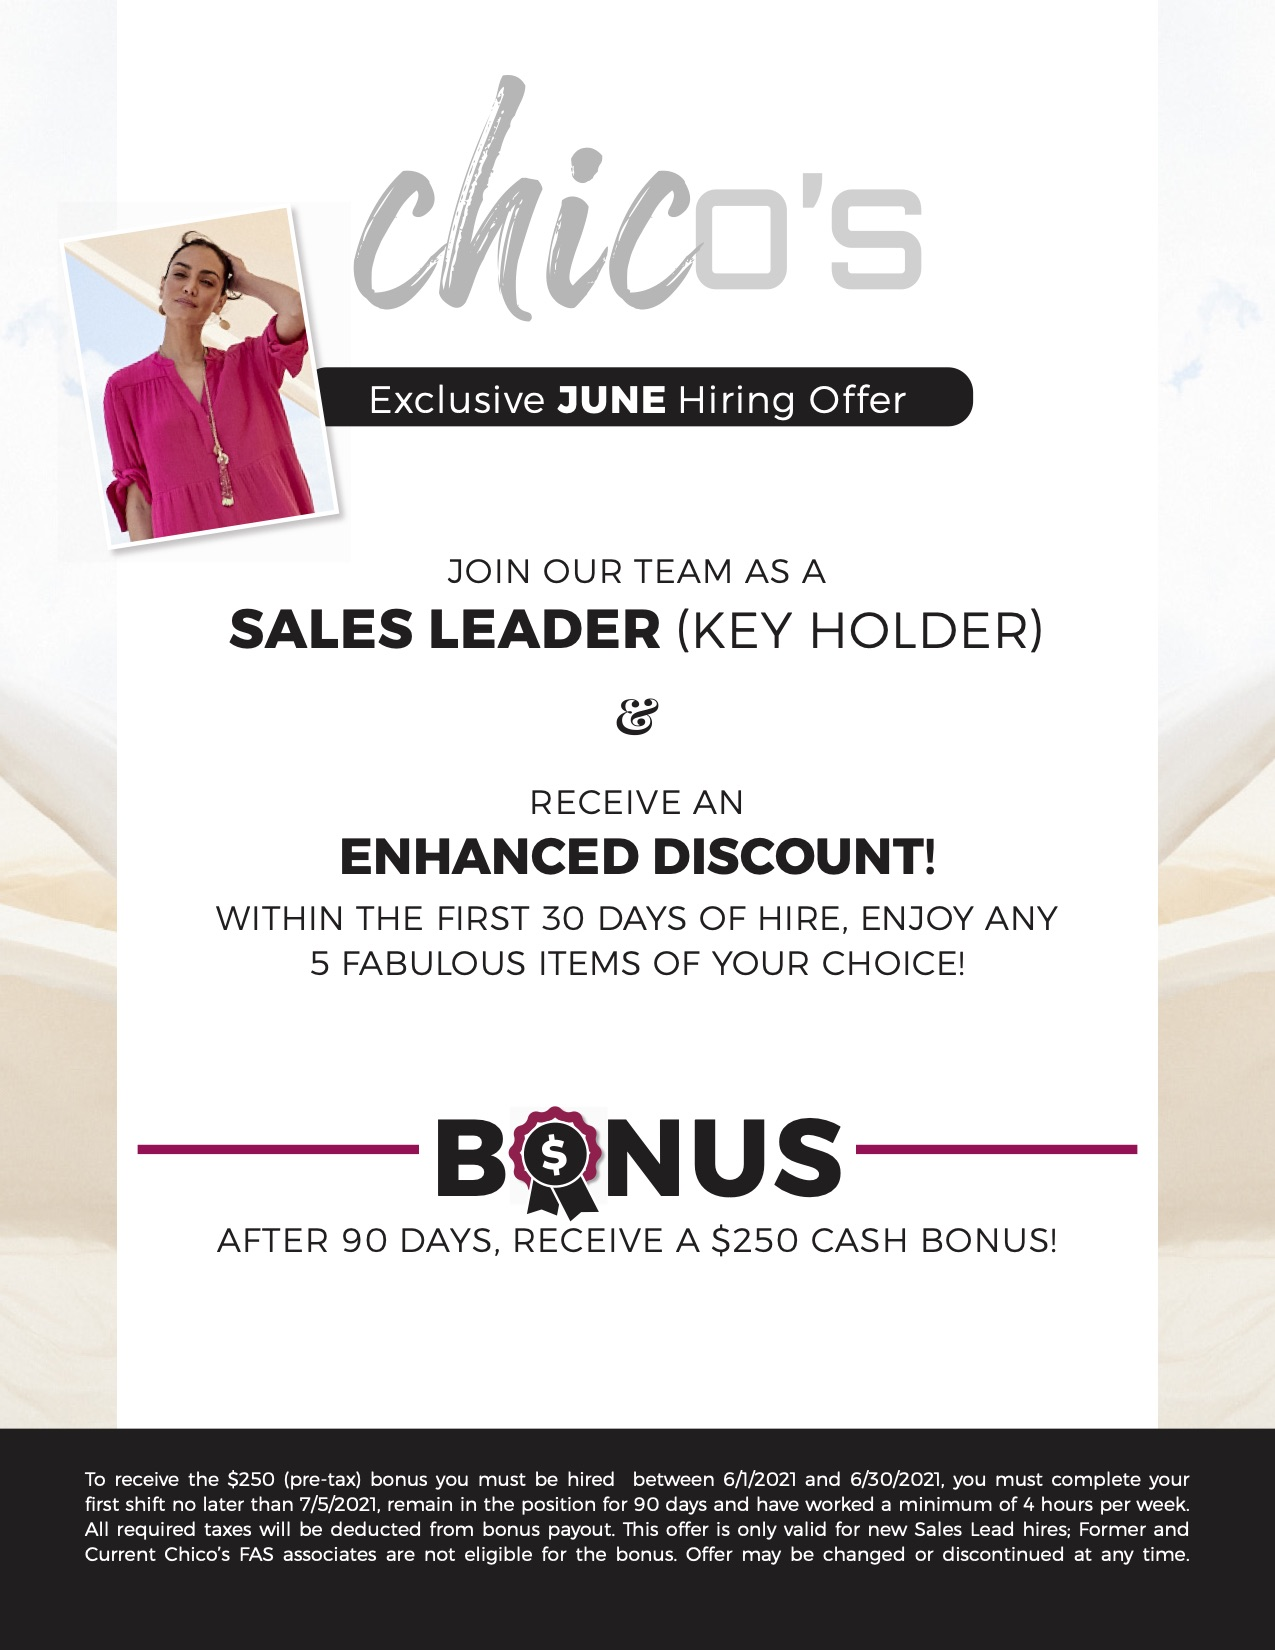 chicos hiring information added discount for additional 5 items in first 30 days